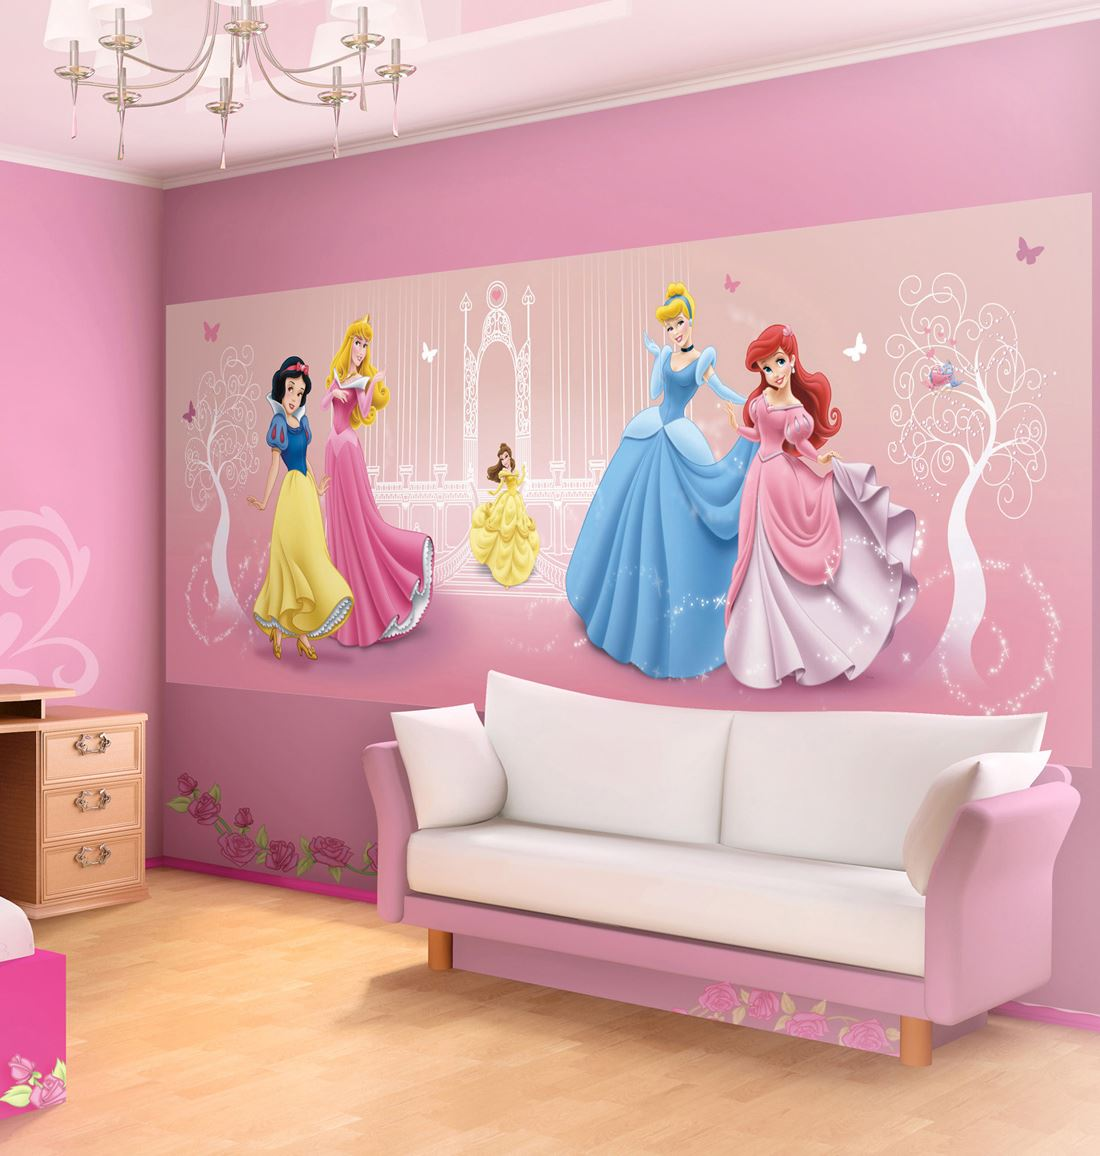 fresque murale princesses disney 250x104 cm pour chambre d 39 enfant lesaccessoires. Black Bedroom Furniture Sets. Home Design Ideas